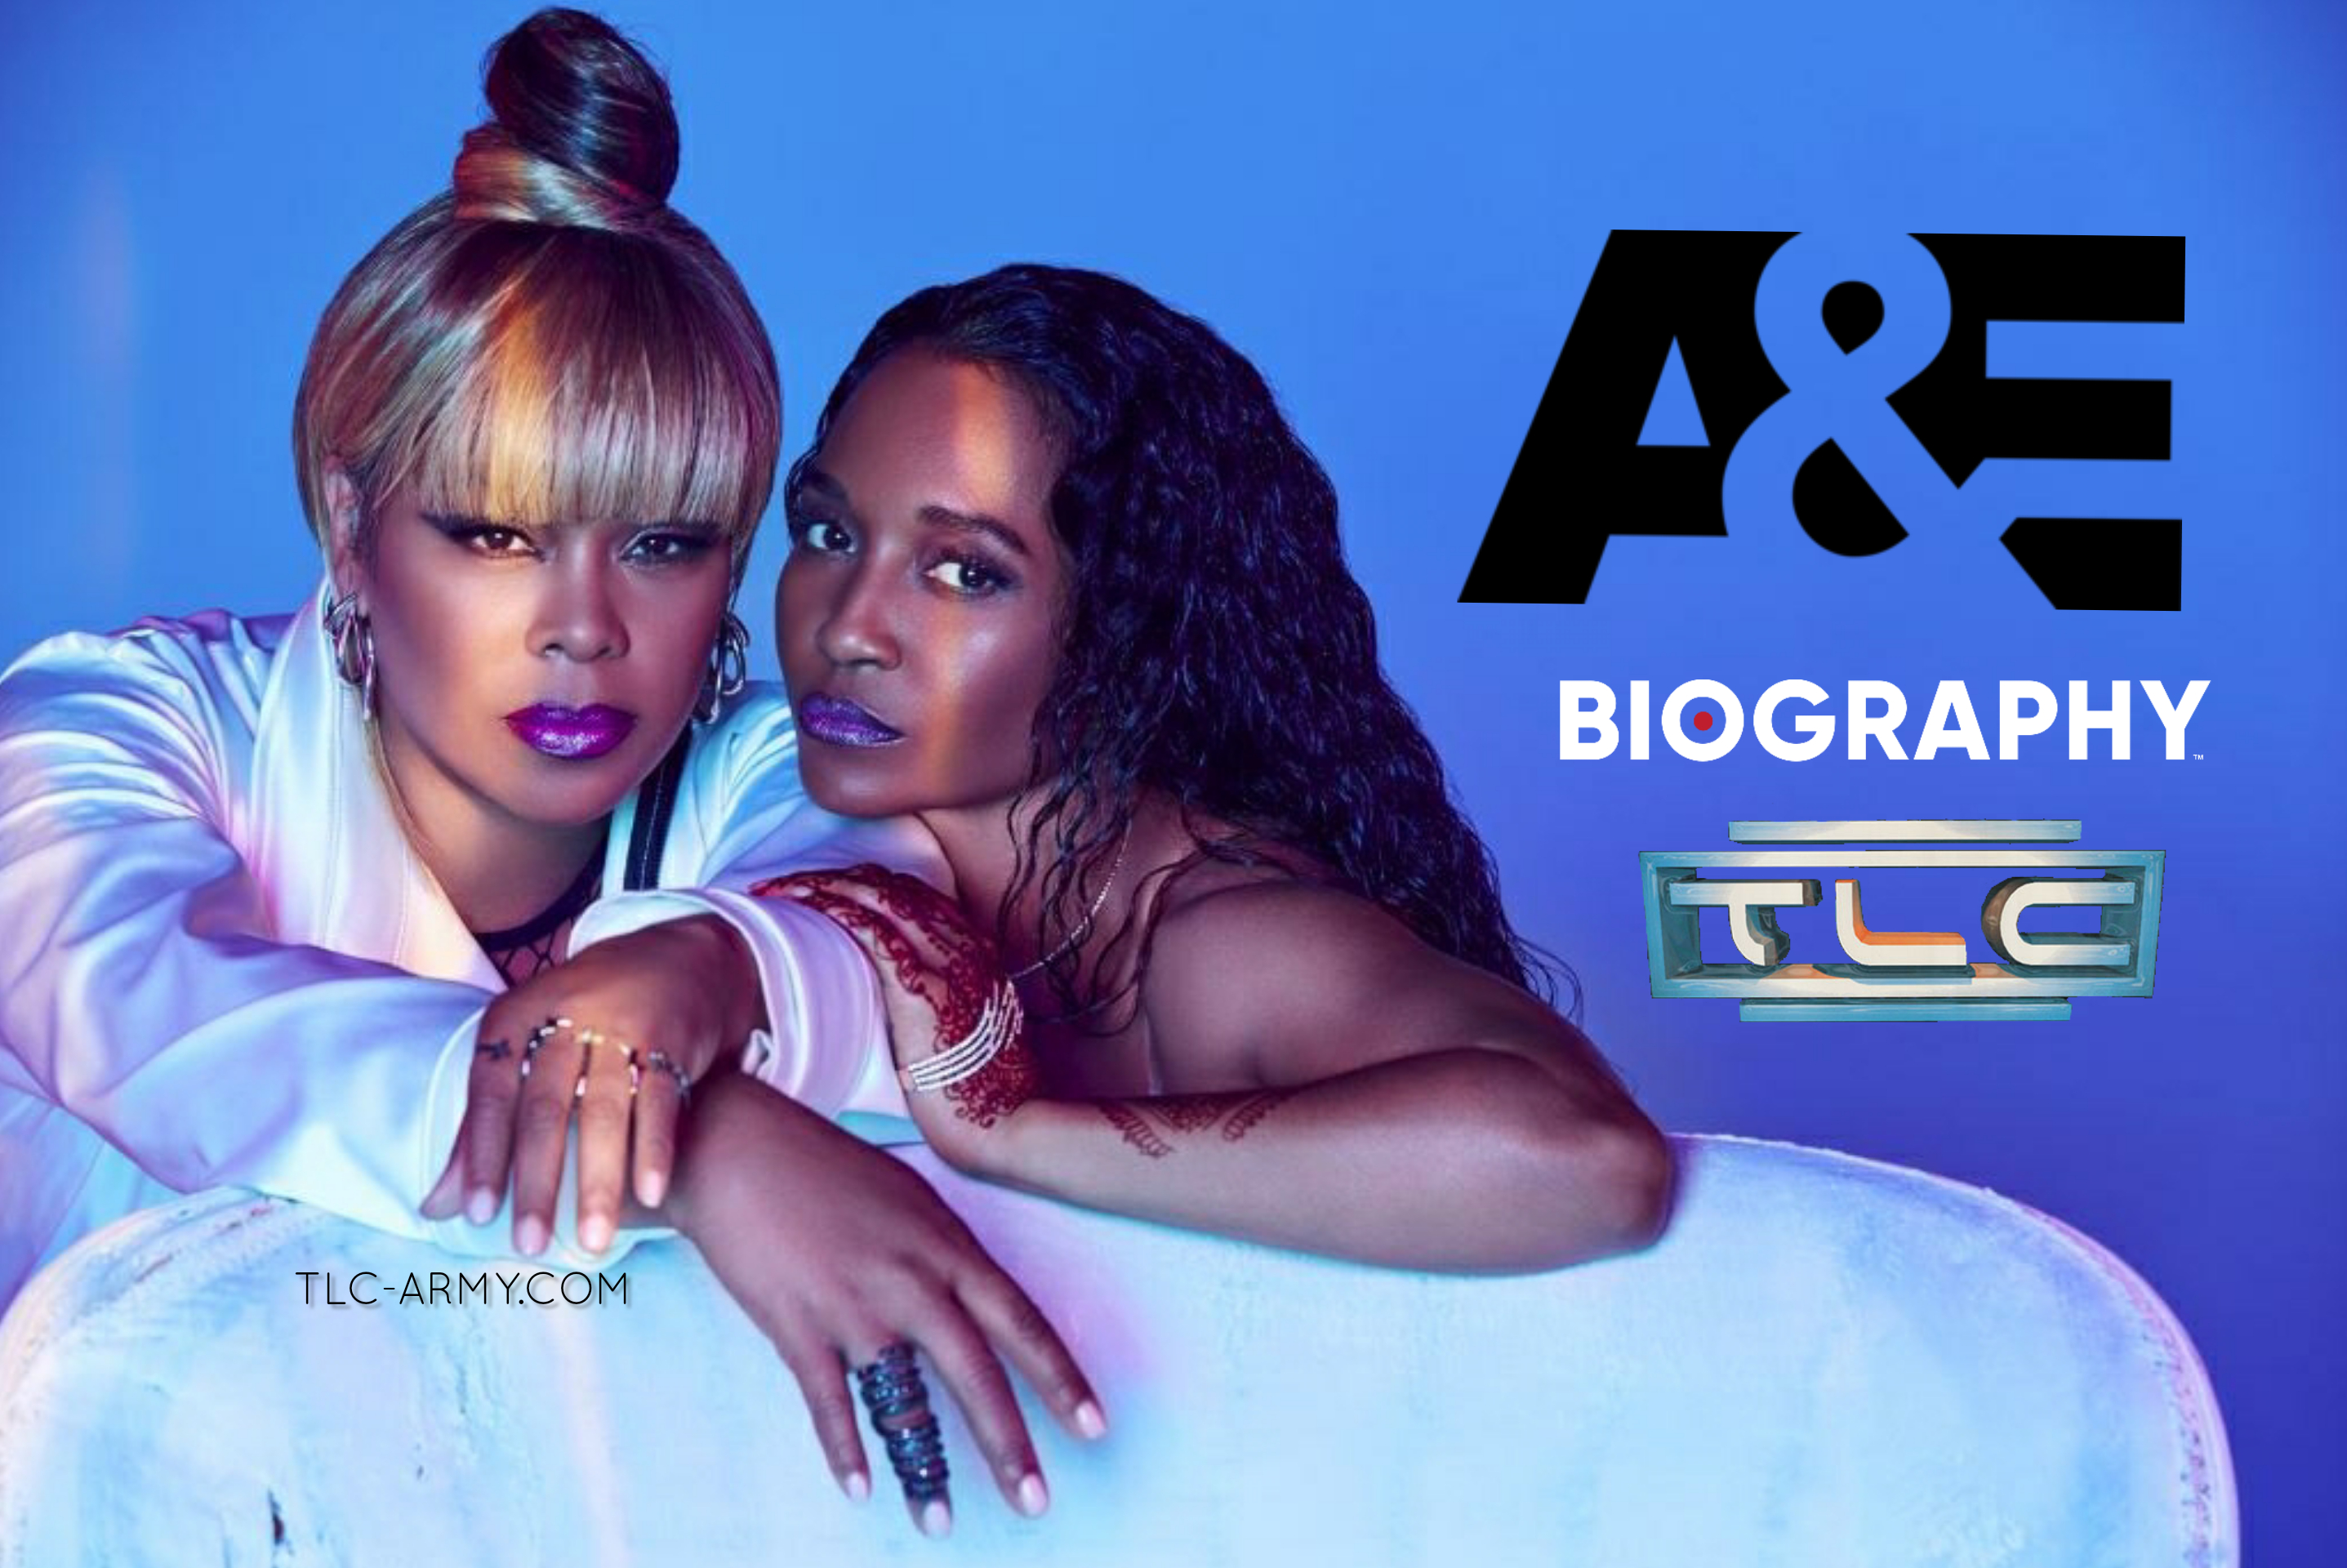 A&E Producing 'Biography: TLC' Documentary In 2021